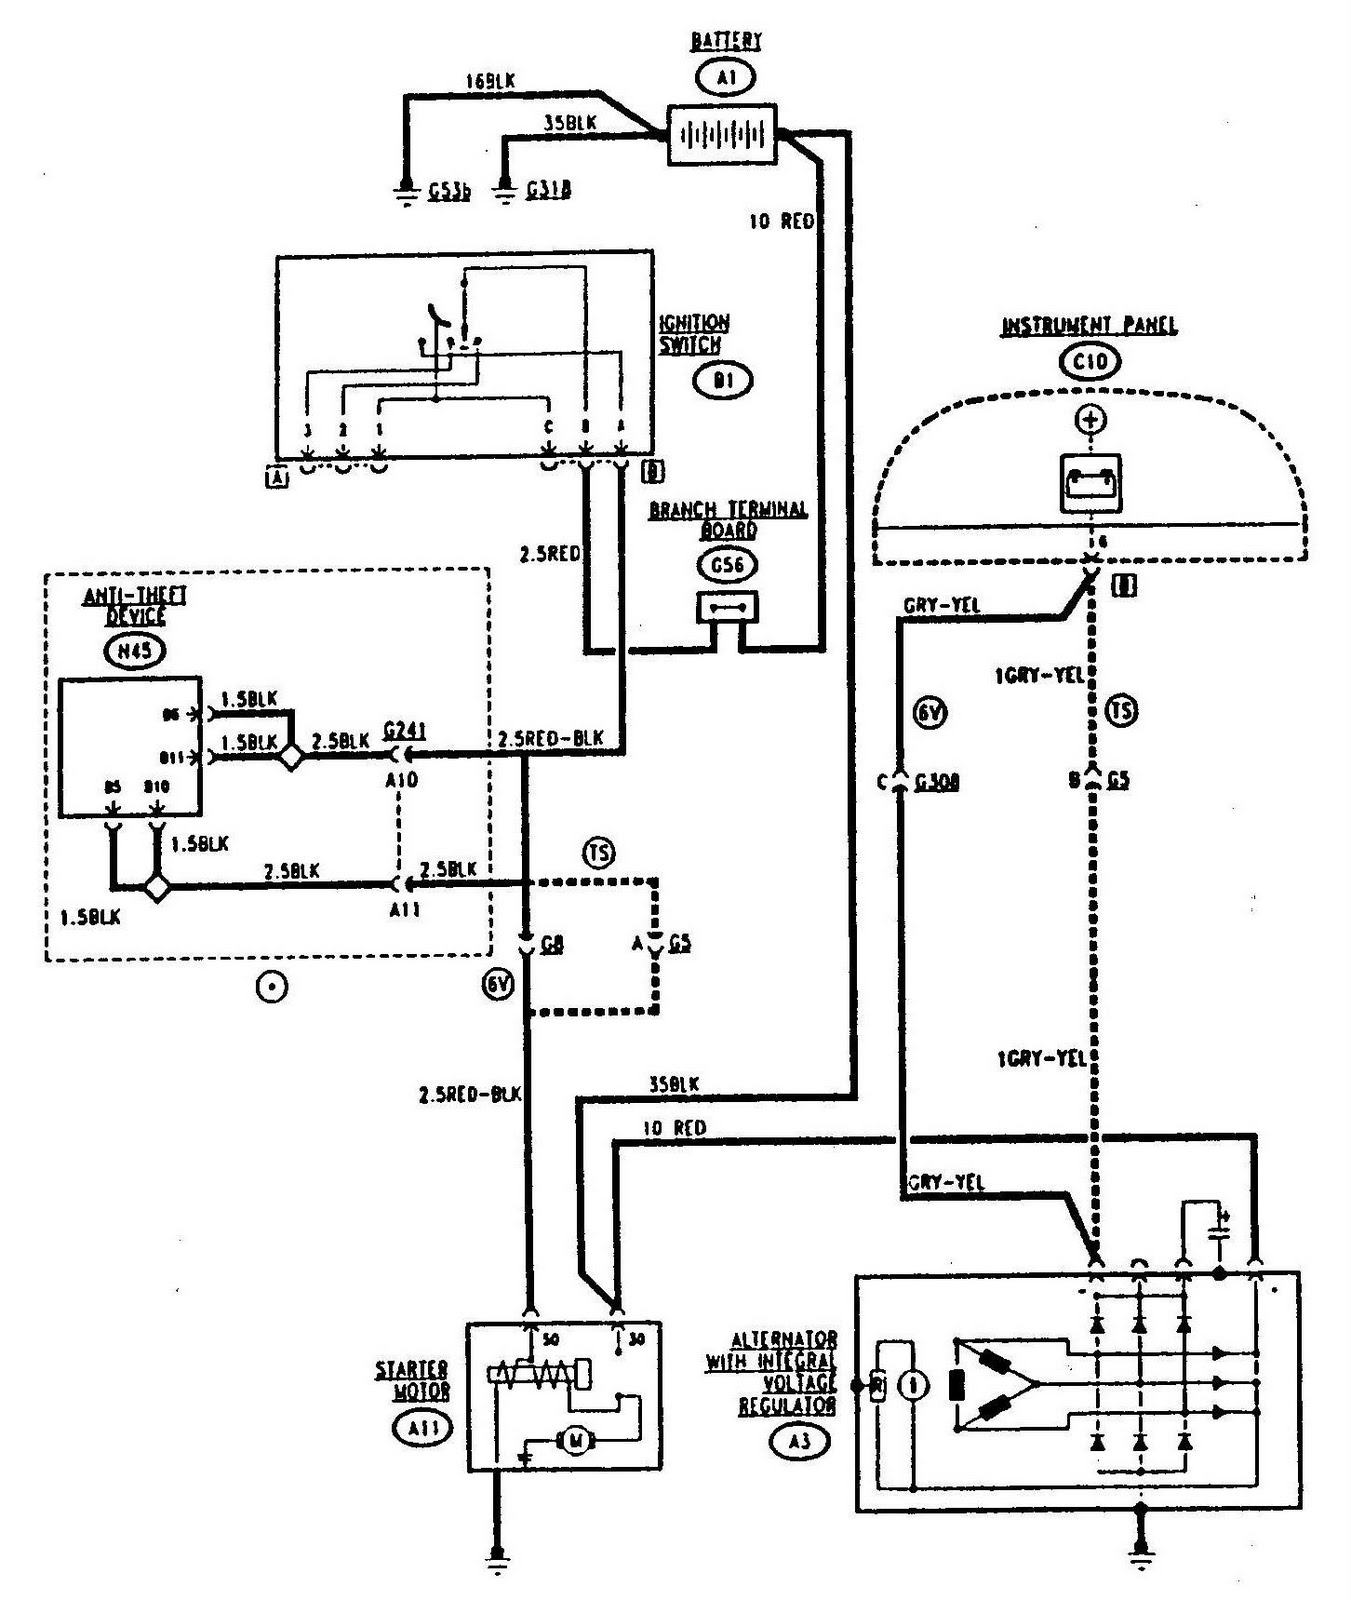 Car Starter Wiring Diagram 2001 Ford F150 Xl Radio Motor Circuit Schematic Get Free Image About